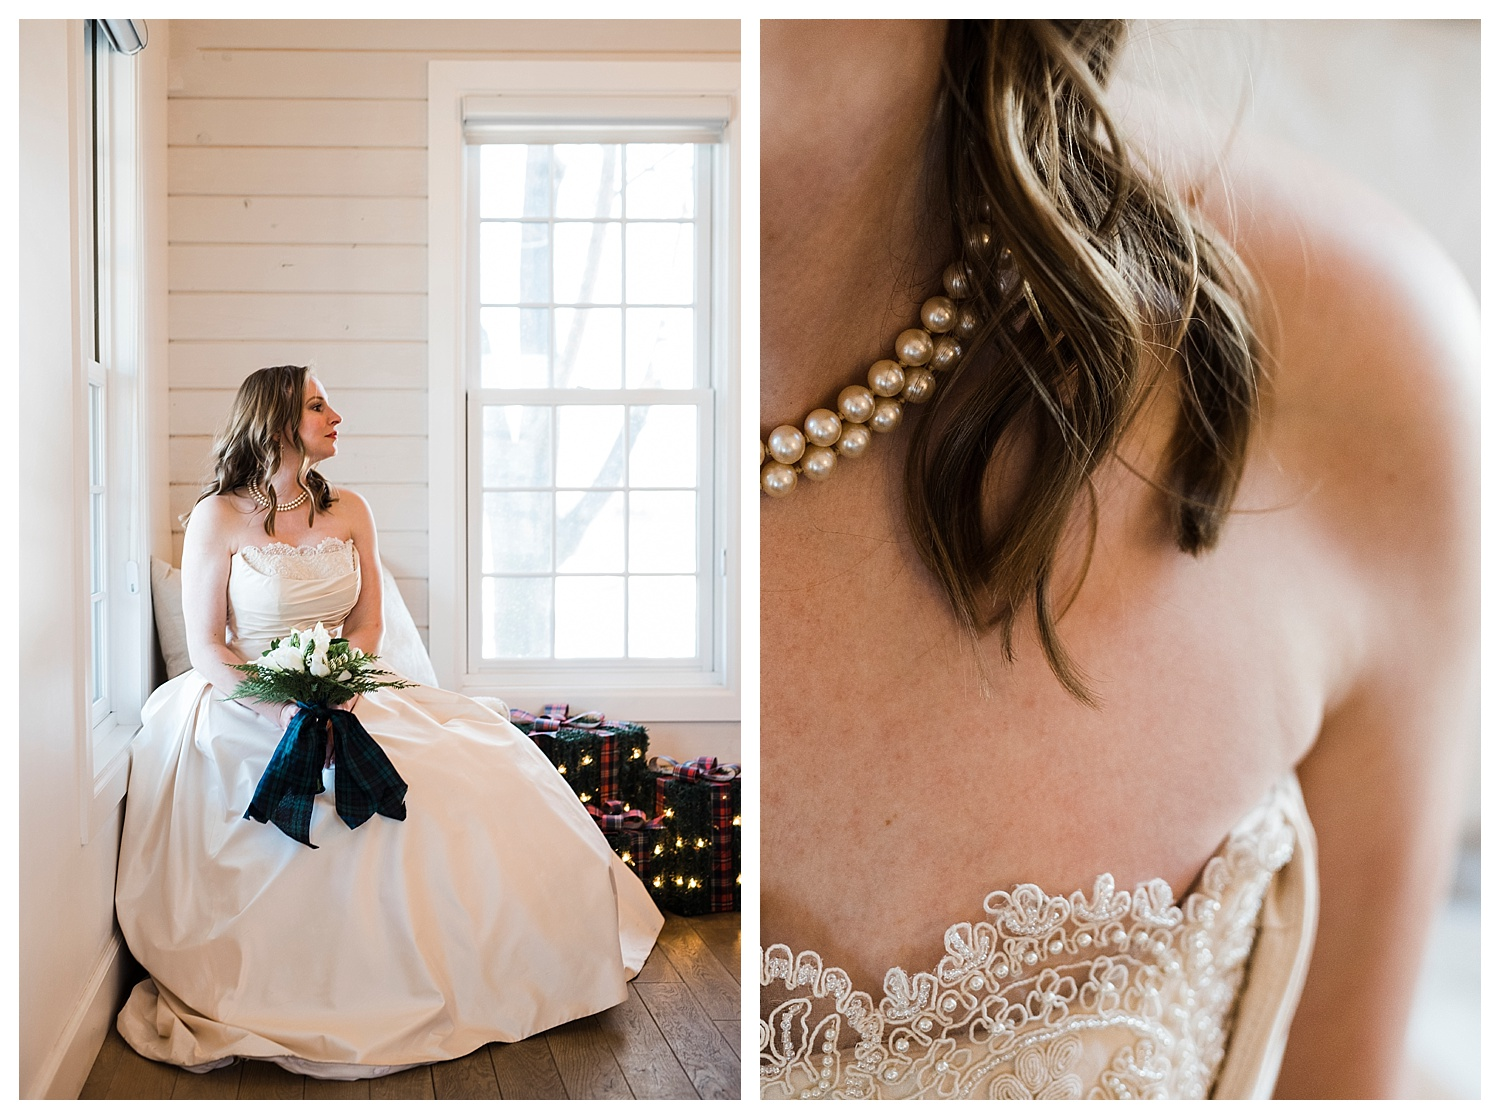 Bridal_Portrait_The_Barn_At_Raccoon_Creek_Wedding_Apollo_Fields_026.jpg